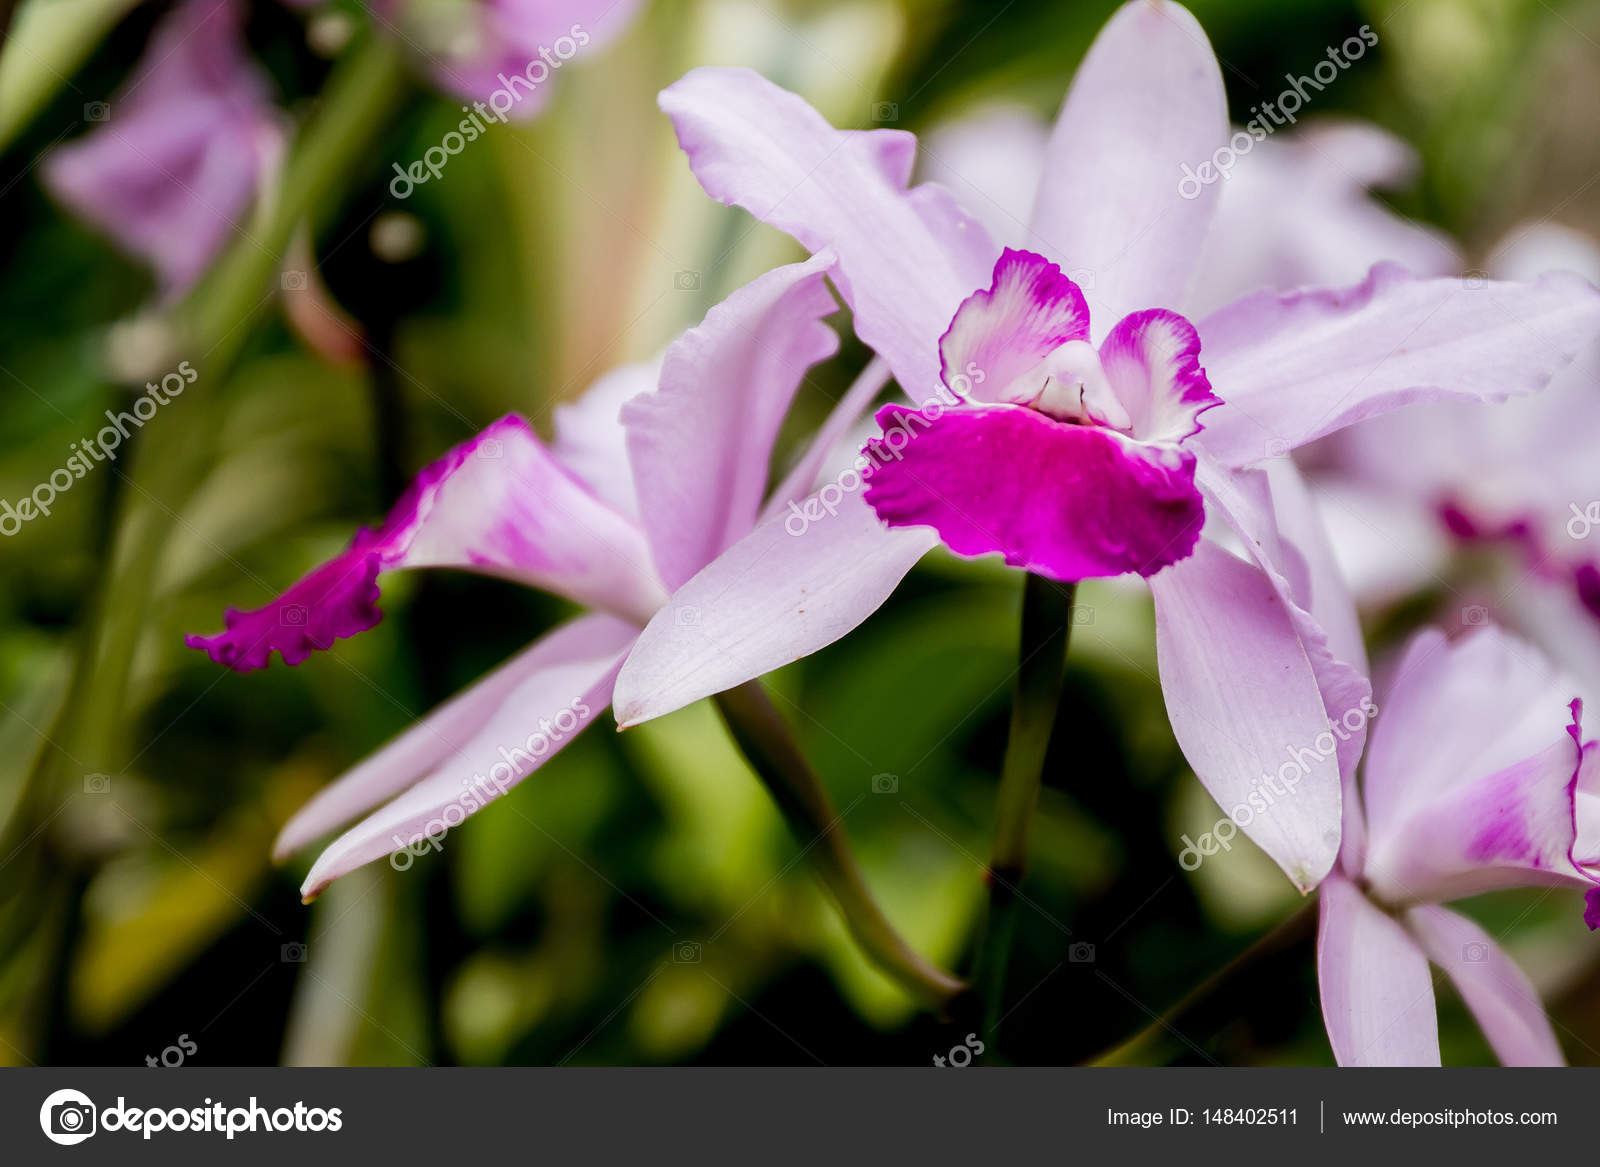 Beautiful orchid flowers stock photo volare2004 148402511 beautiful orchid flowers on natural background photo by volare2004 izmirmasajfo